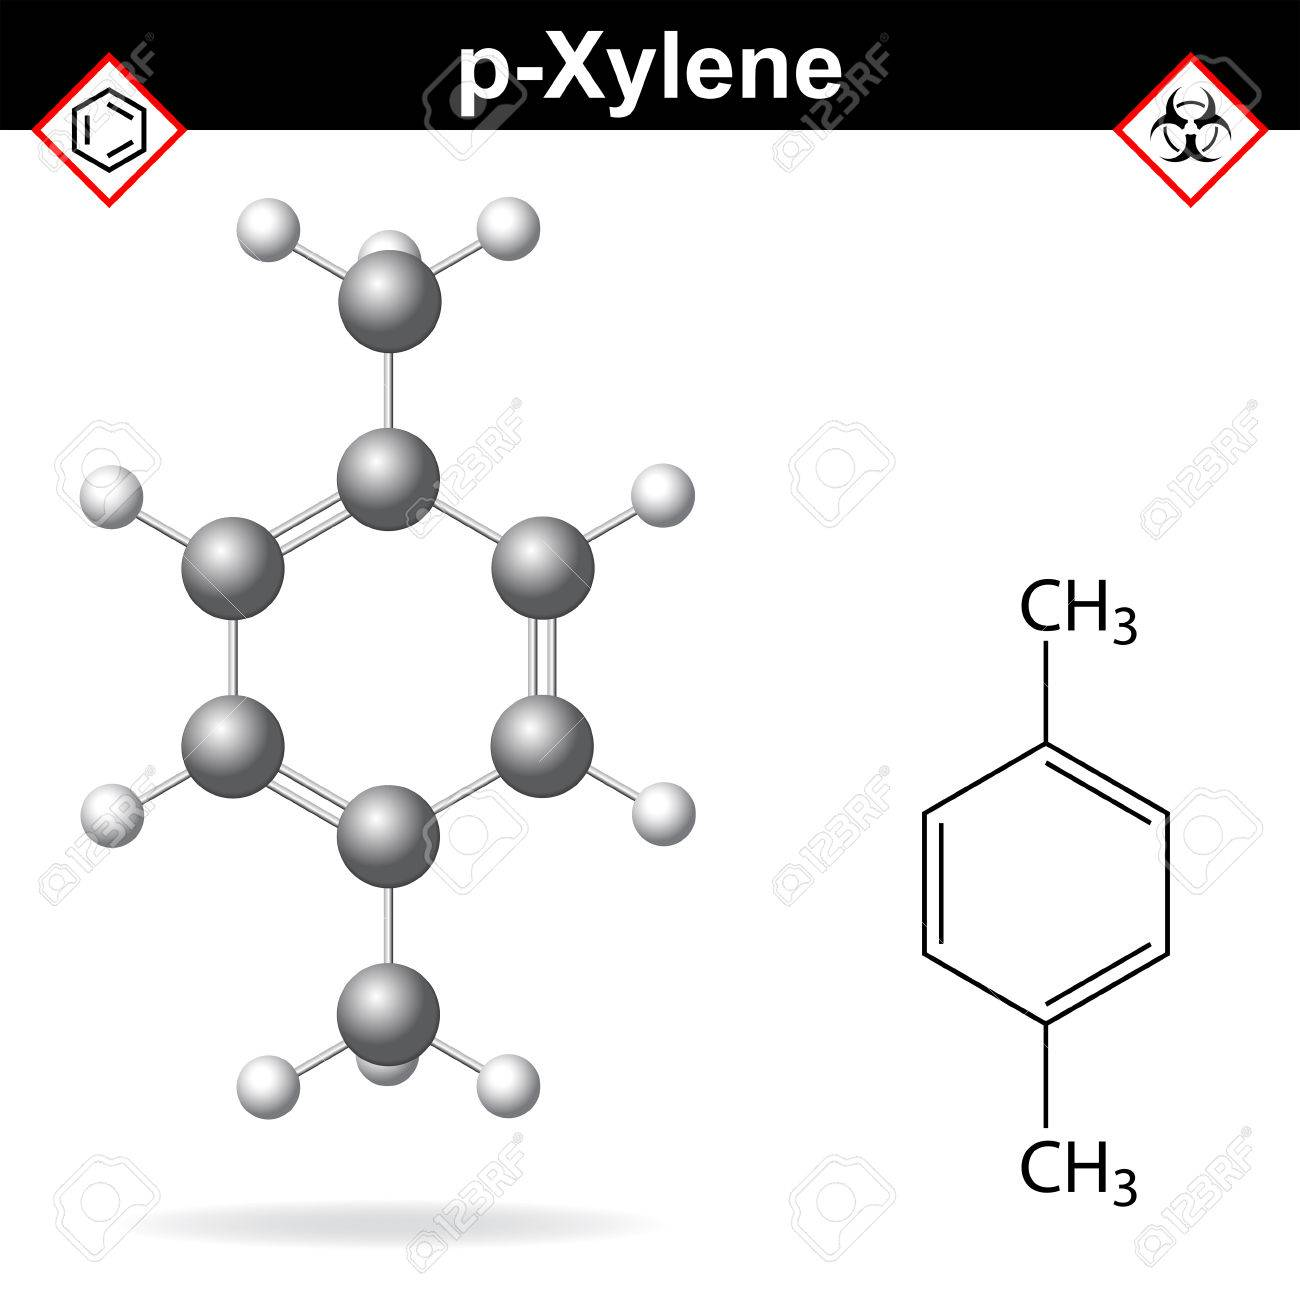 Xylene molecule - structural chemical formula and model of para-xylene,